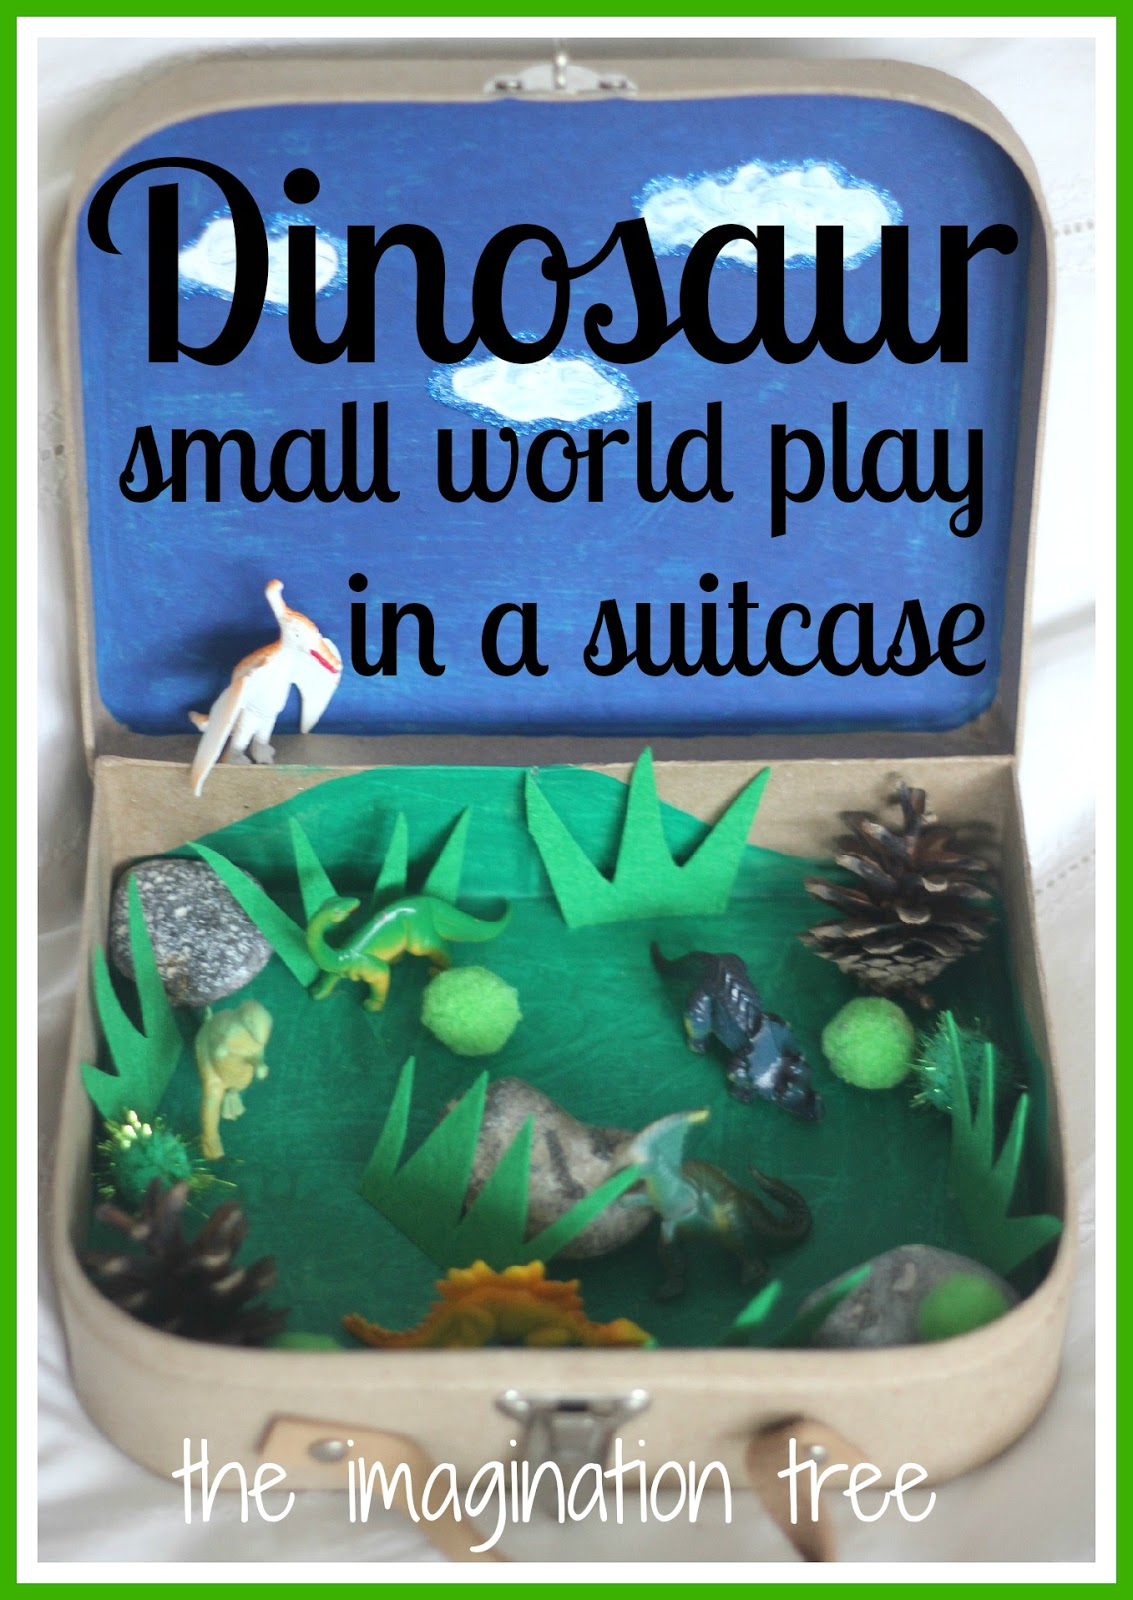 dinosaur small world play in a suitcase